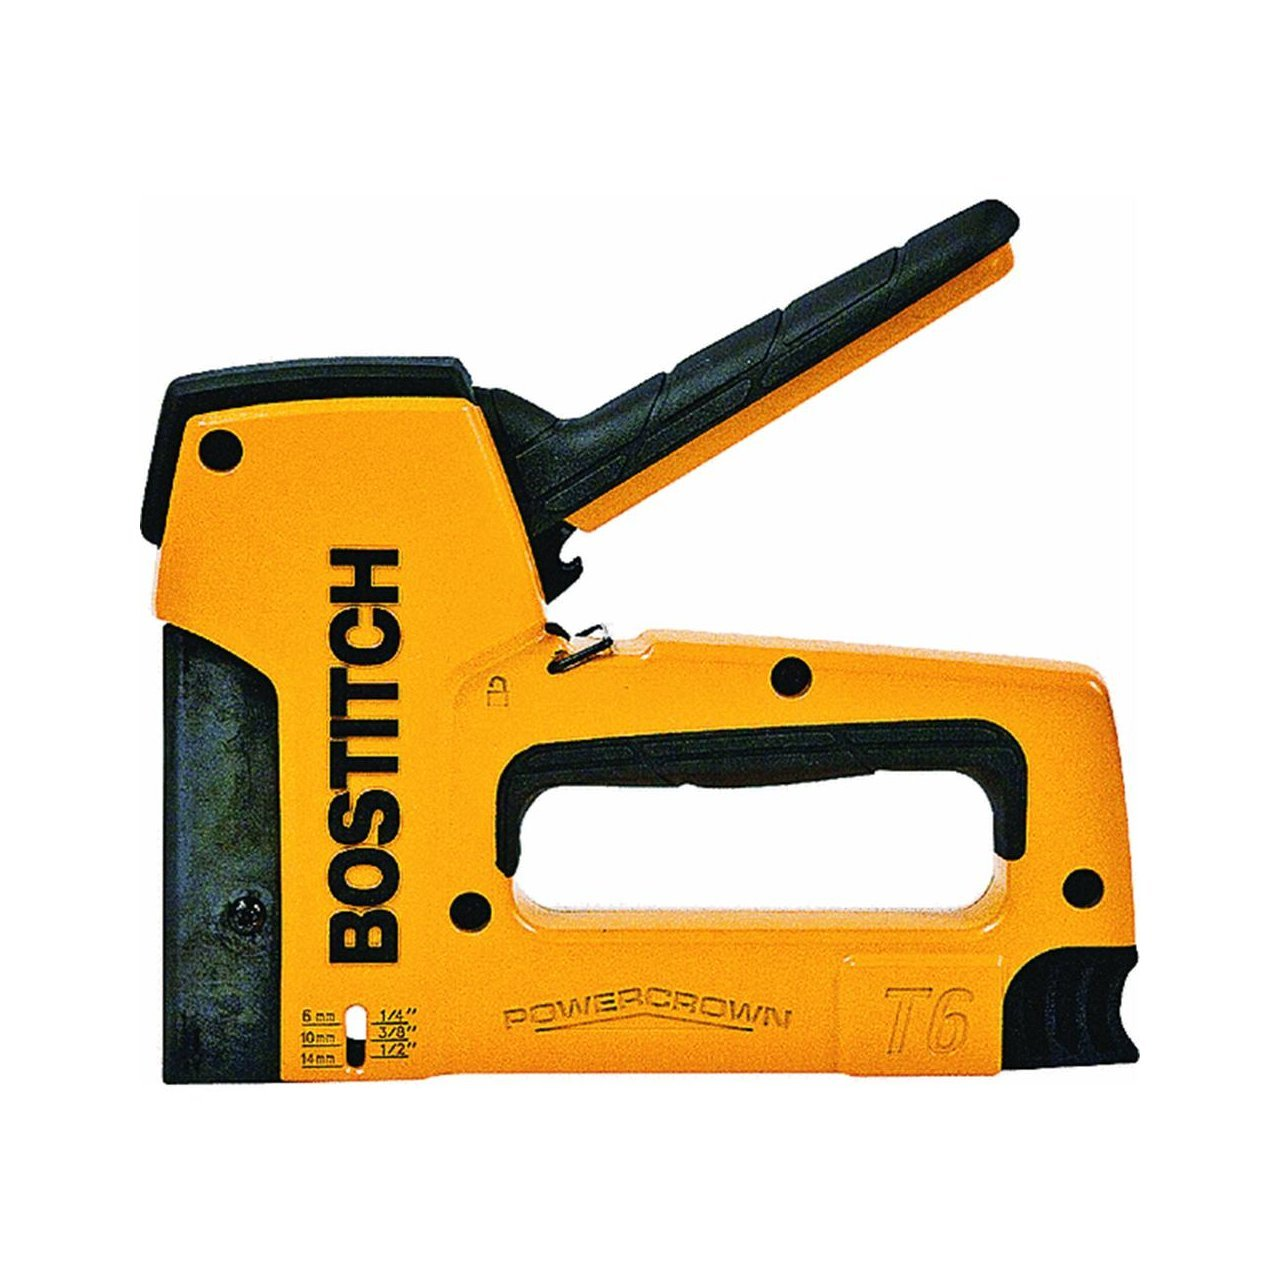 Stanley TR250 SharpShooter Staple Gun Review | Staple Gun ...